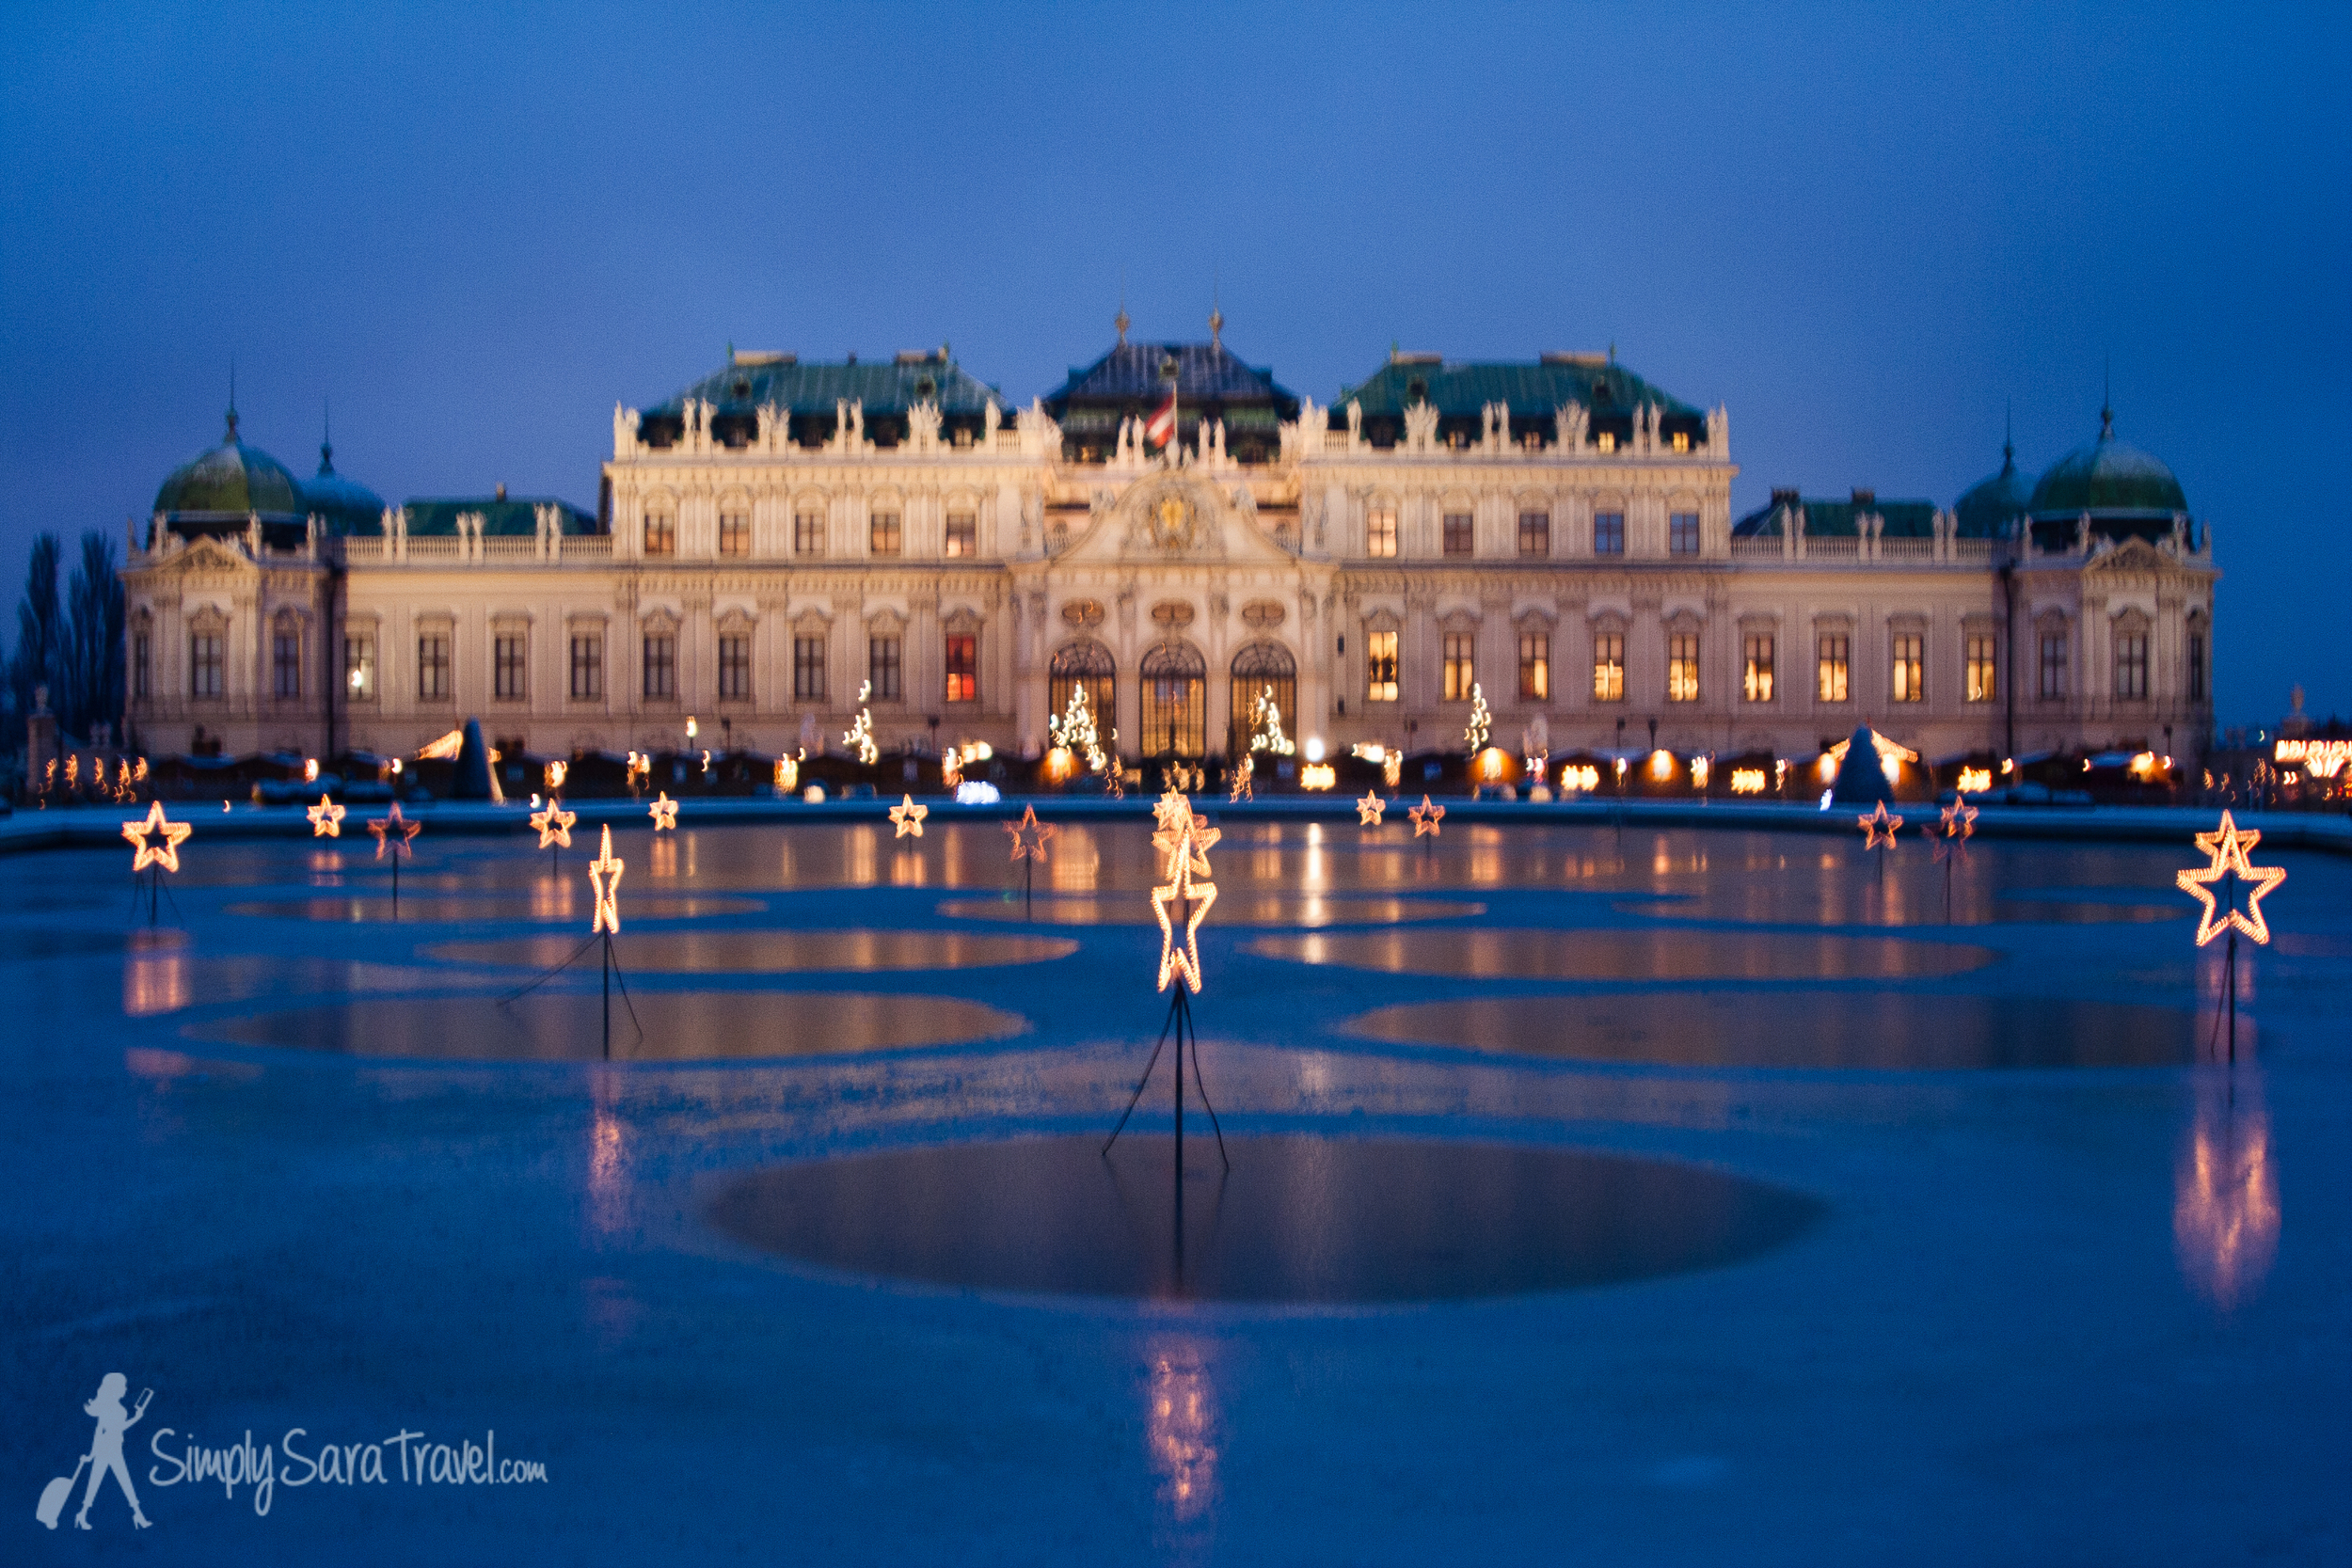 Belvedere Palace in Vienna hosted a Christmas market